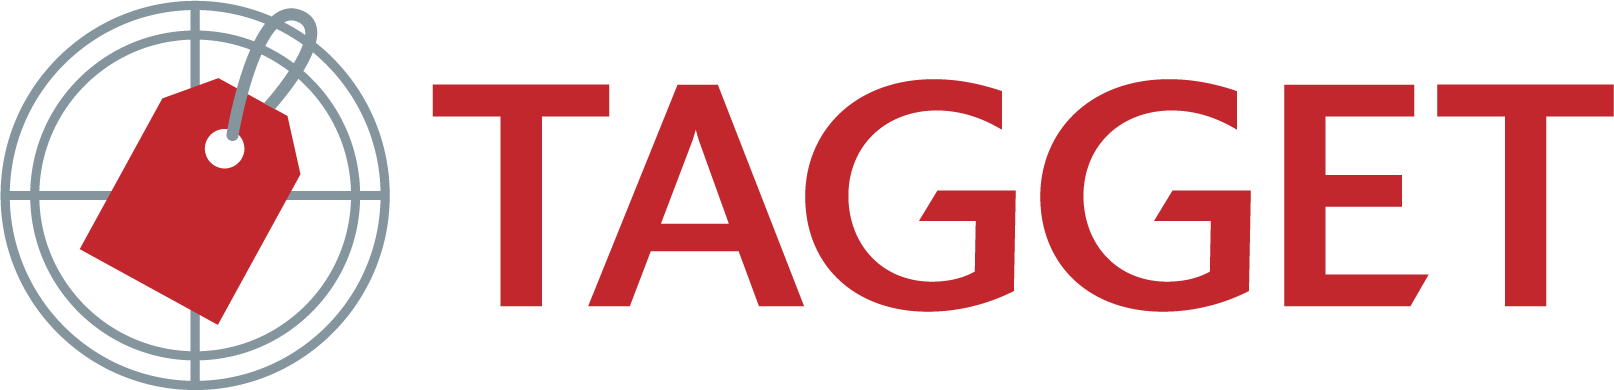 Tagget